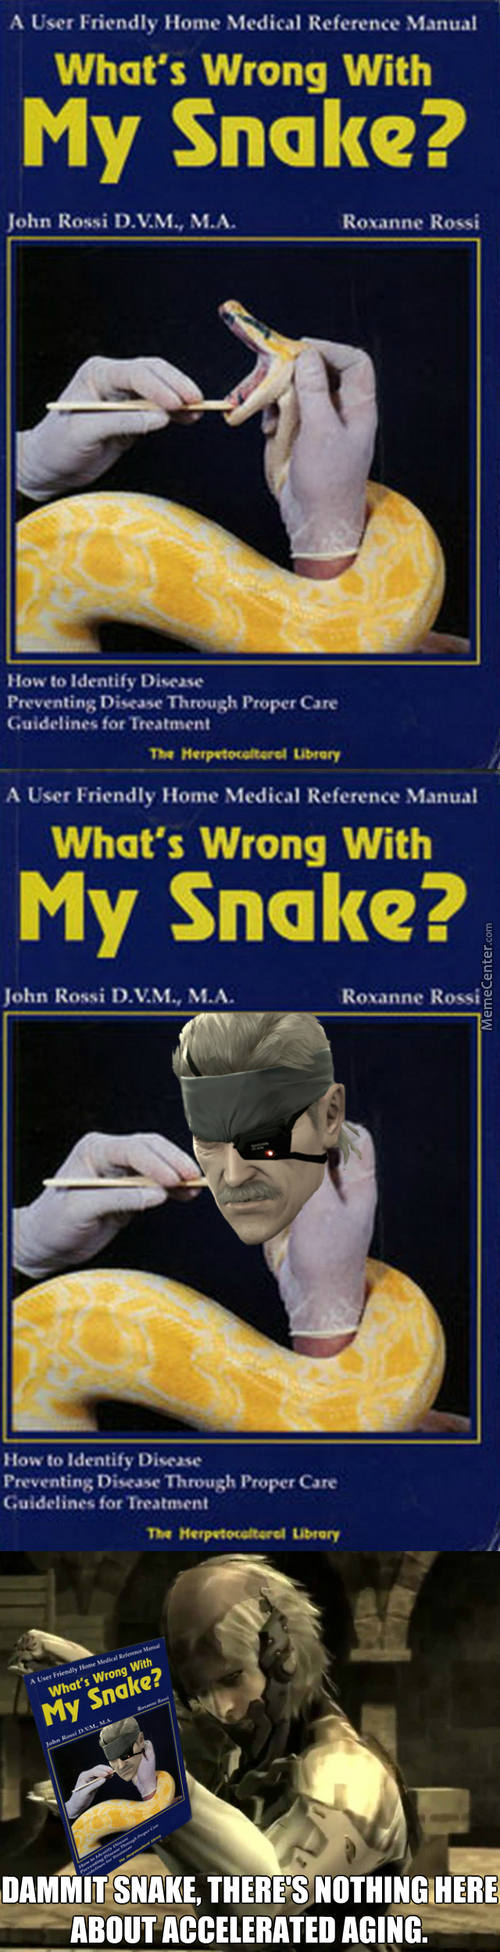 Maybe Snake Should Shove A Burning Cigar In There, That Mostly Helps